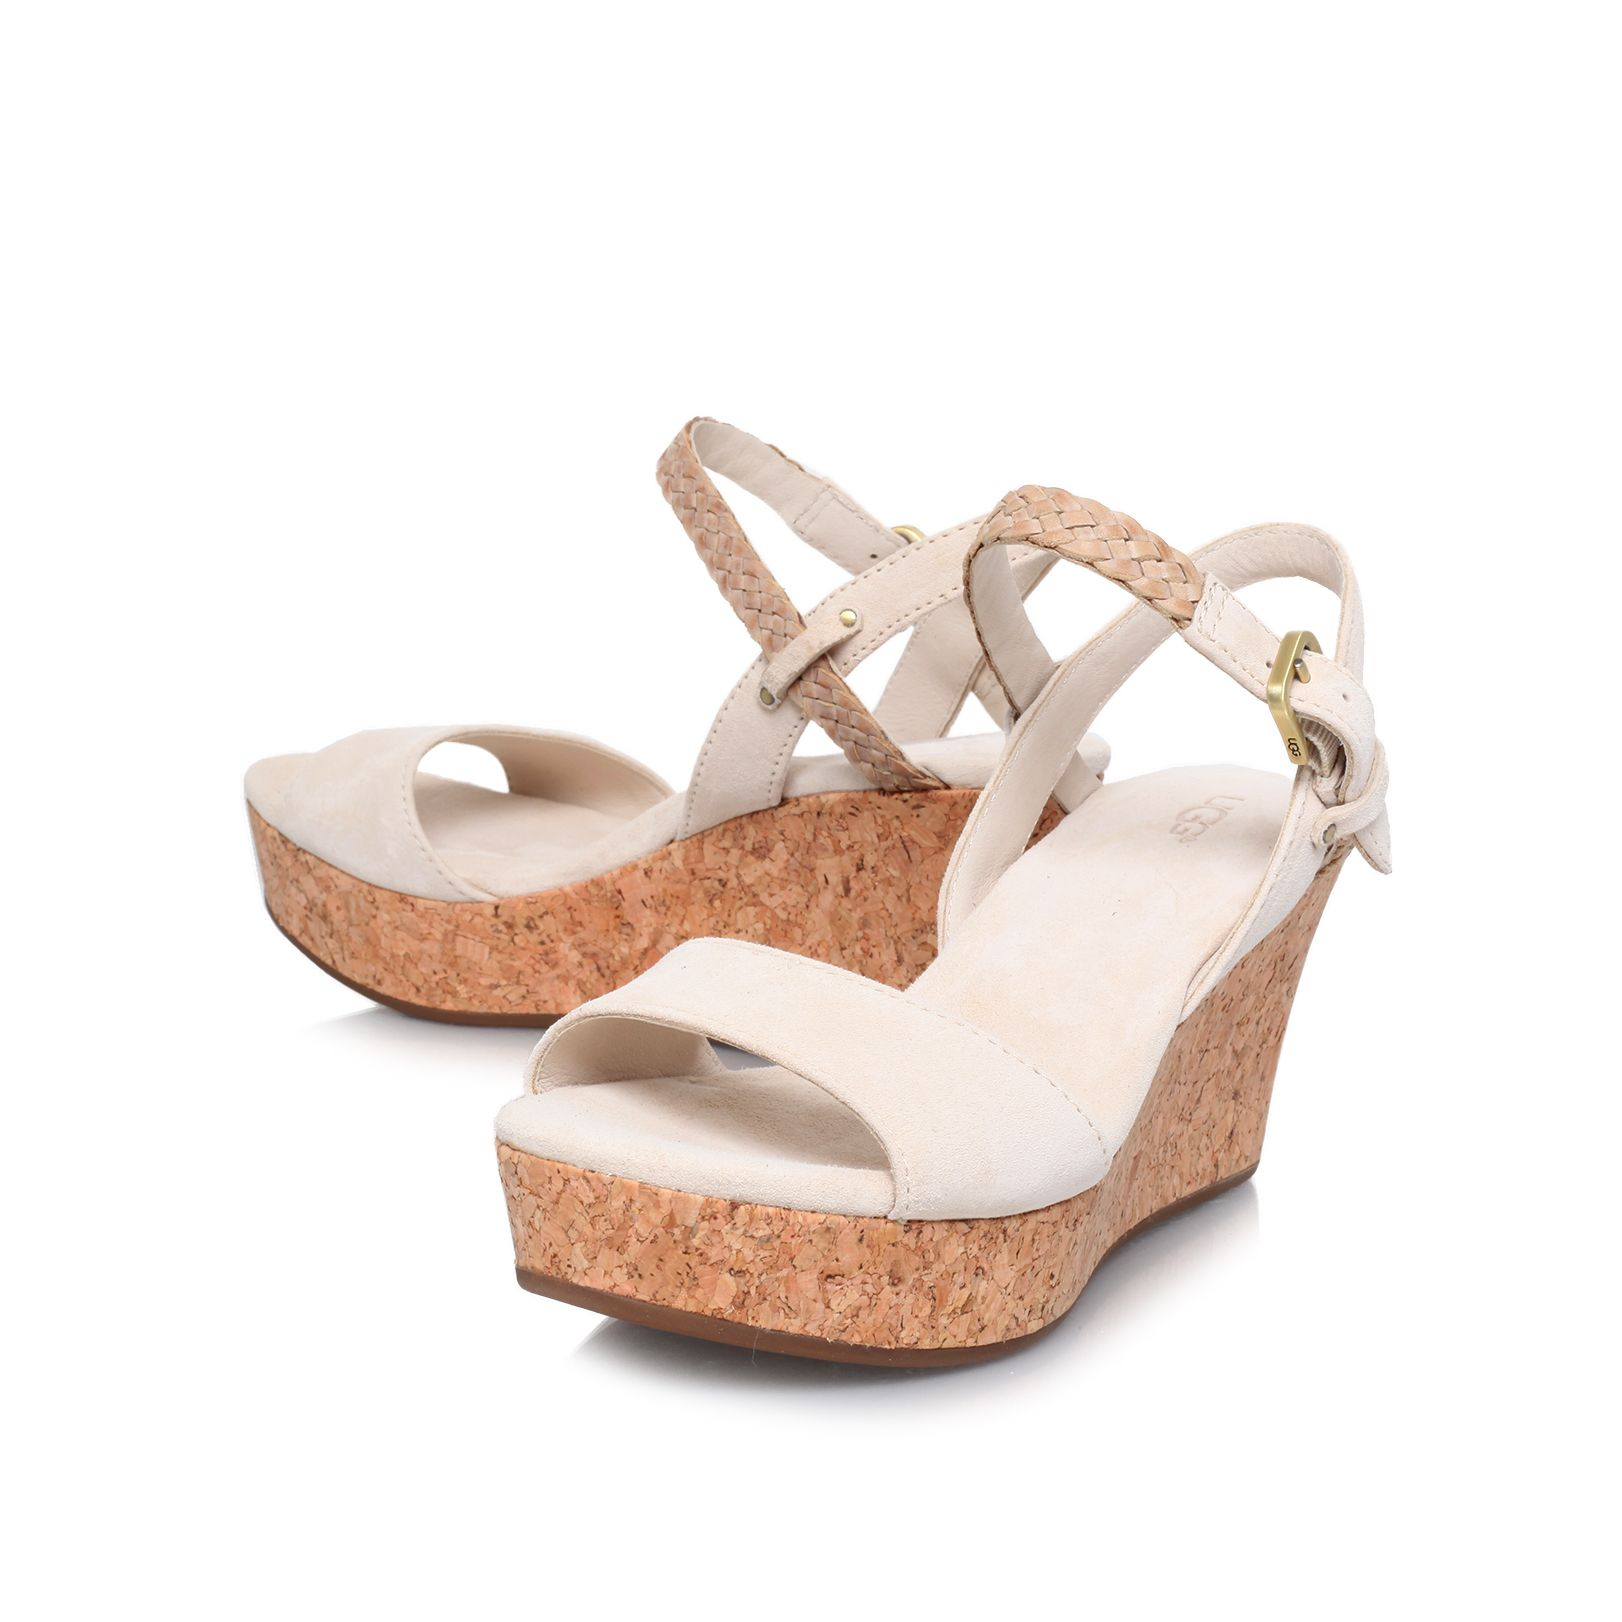 D`alessio mid heeled wedges